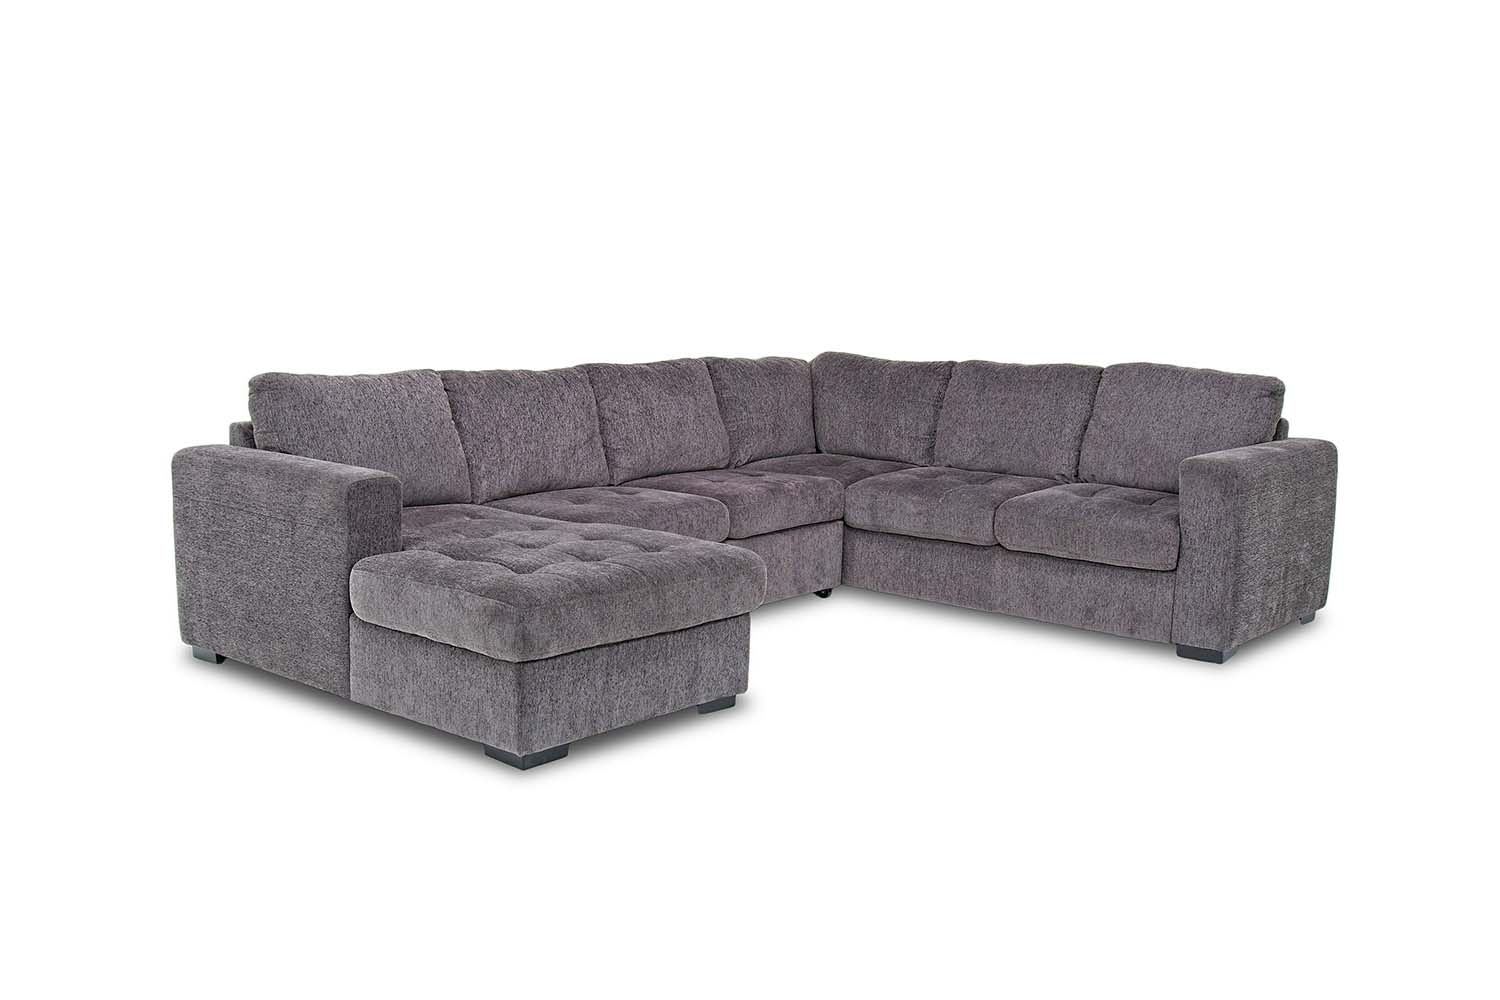 Prime Sectional Couches Sofas Mor Furniture Gamerscity Chair Design For Home Gamerscityorg